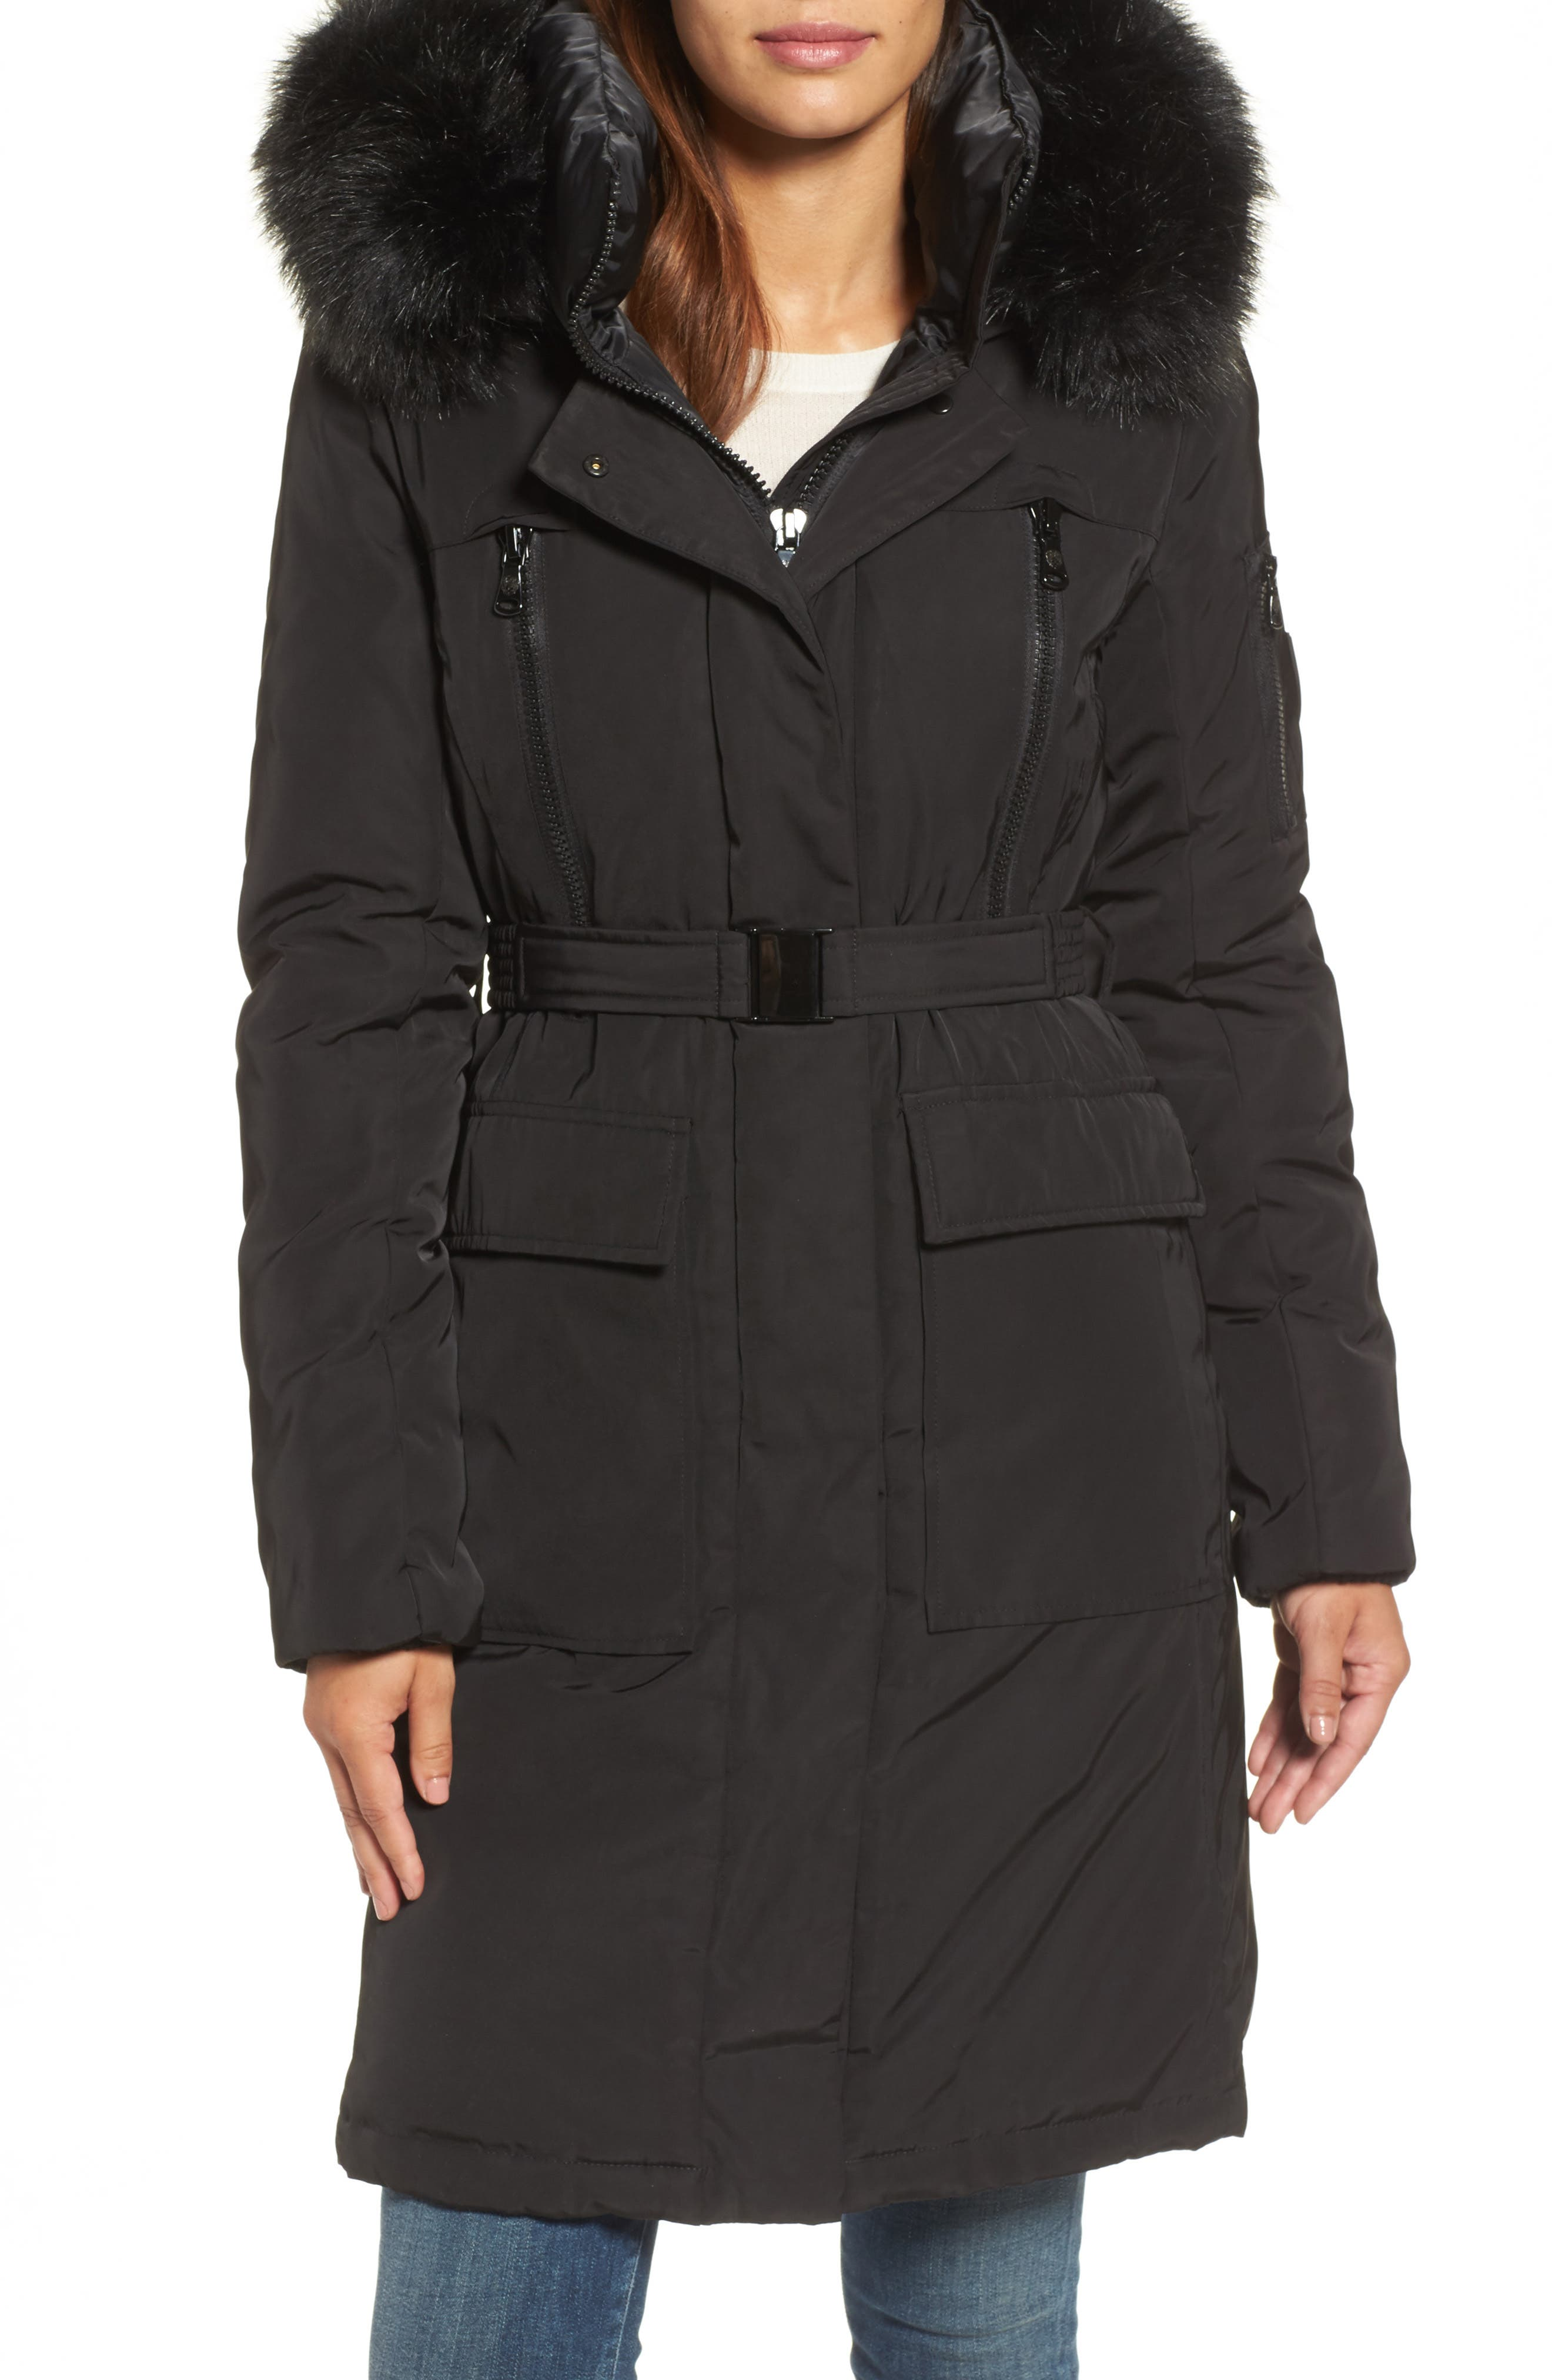 Main Image - Vince Camuto Insulated Puffer Jacket